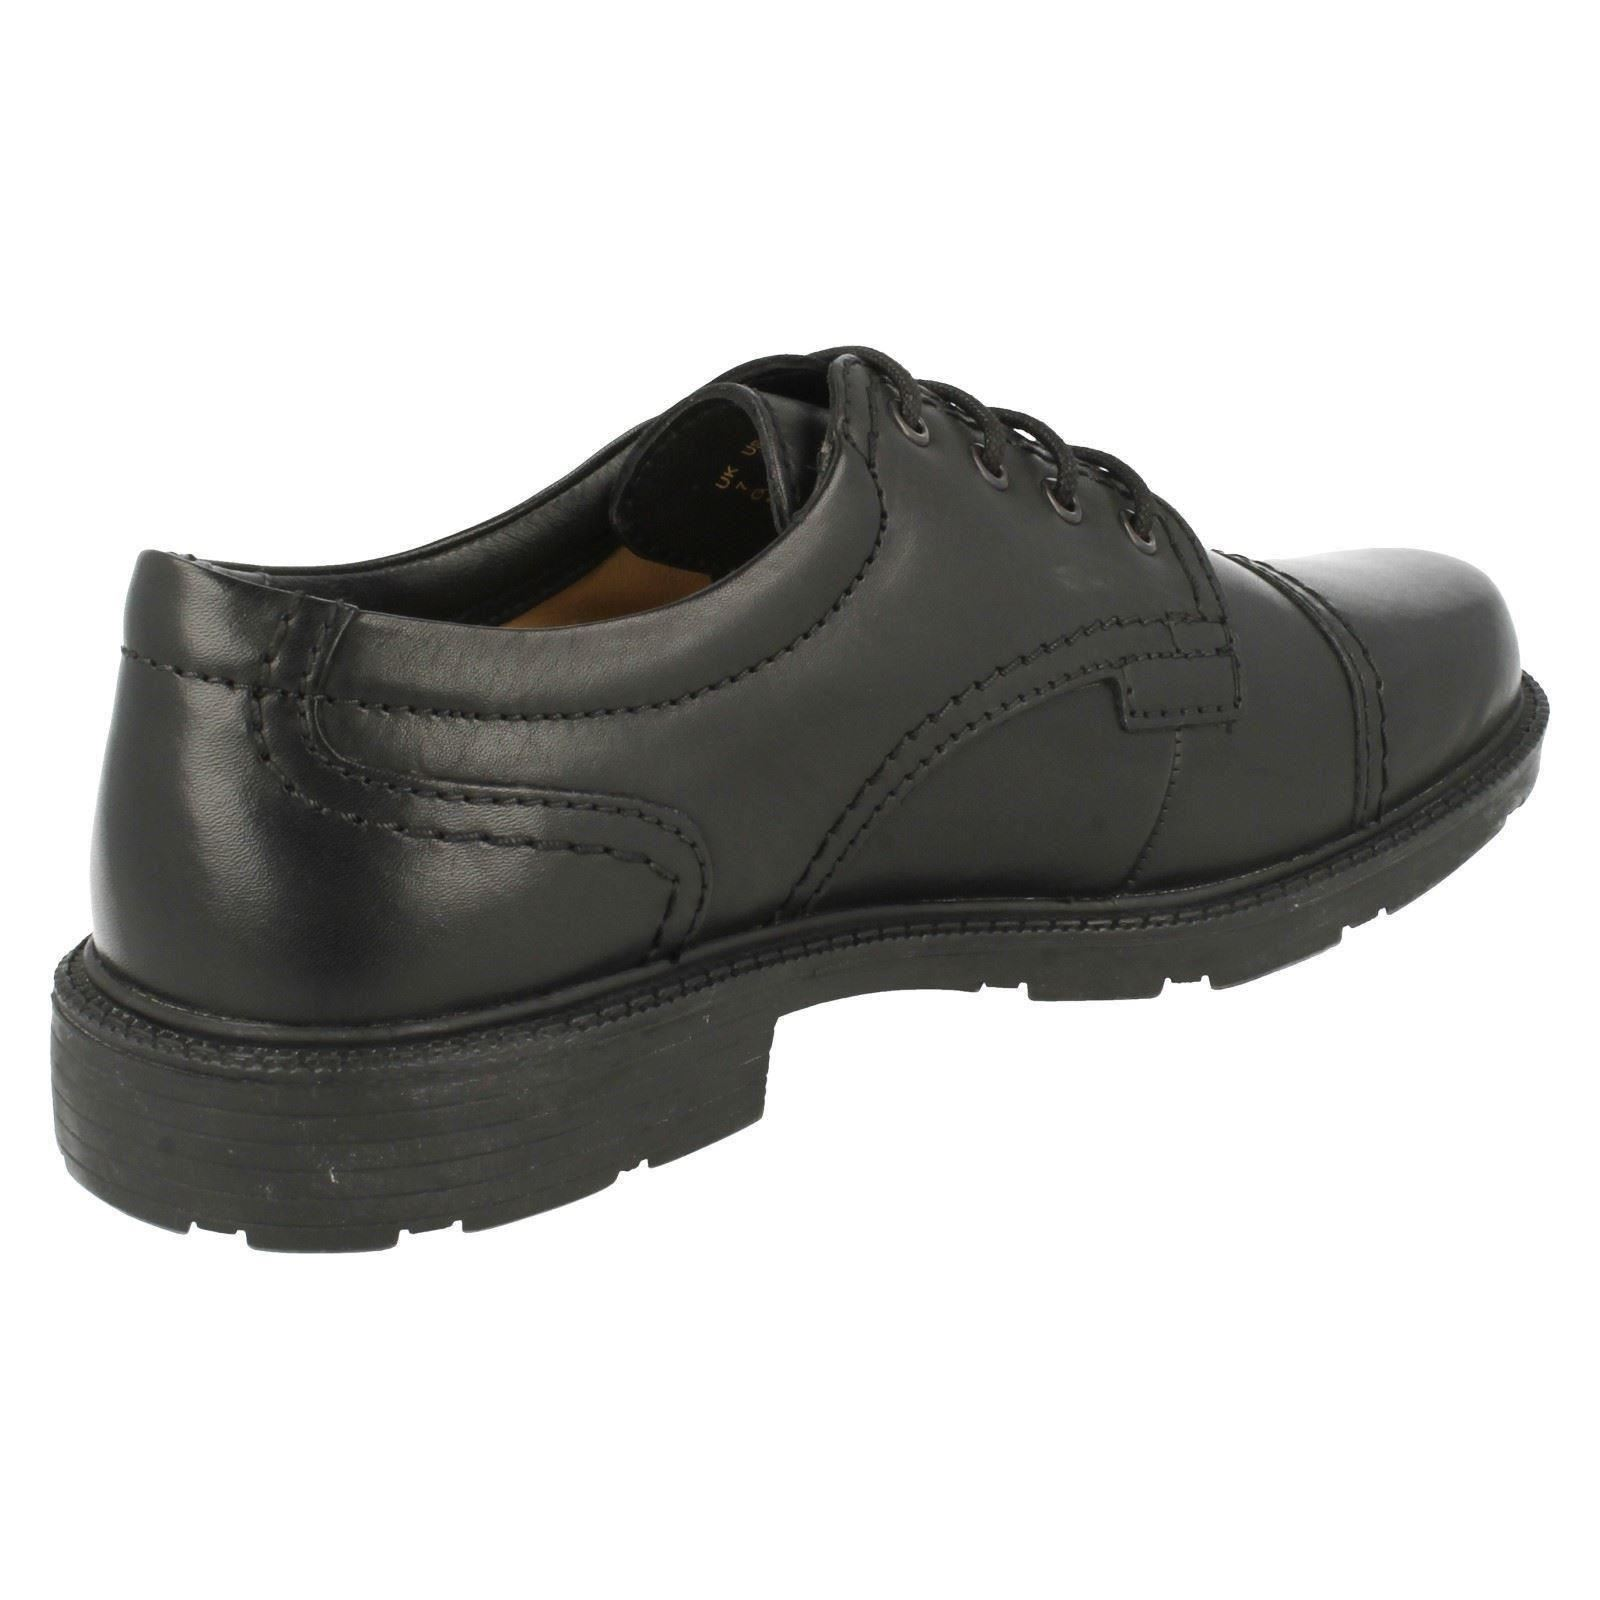 Mens Clarks Formal Shoes Lair Cap